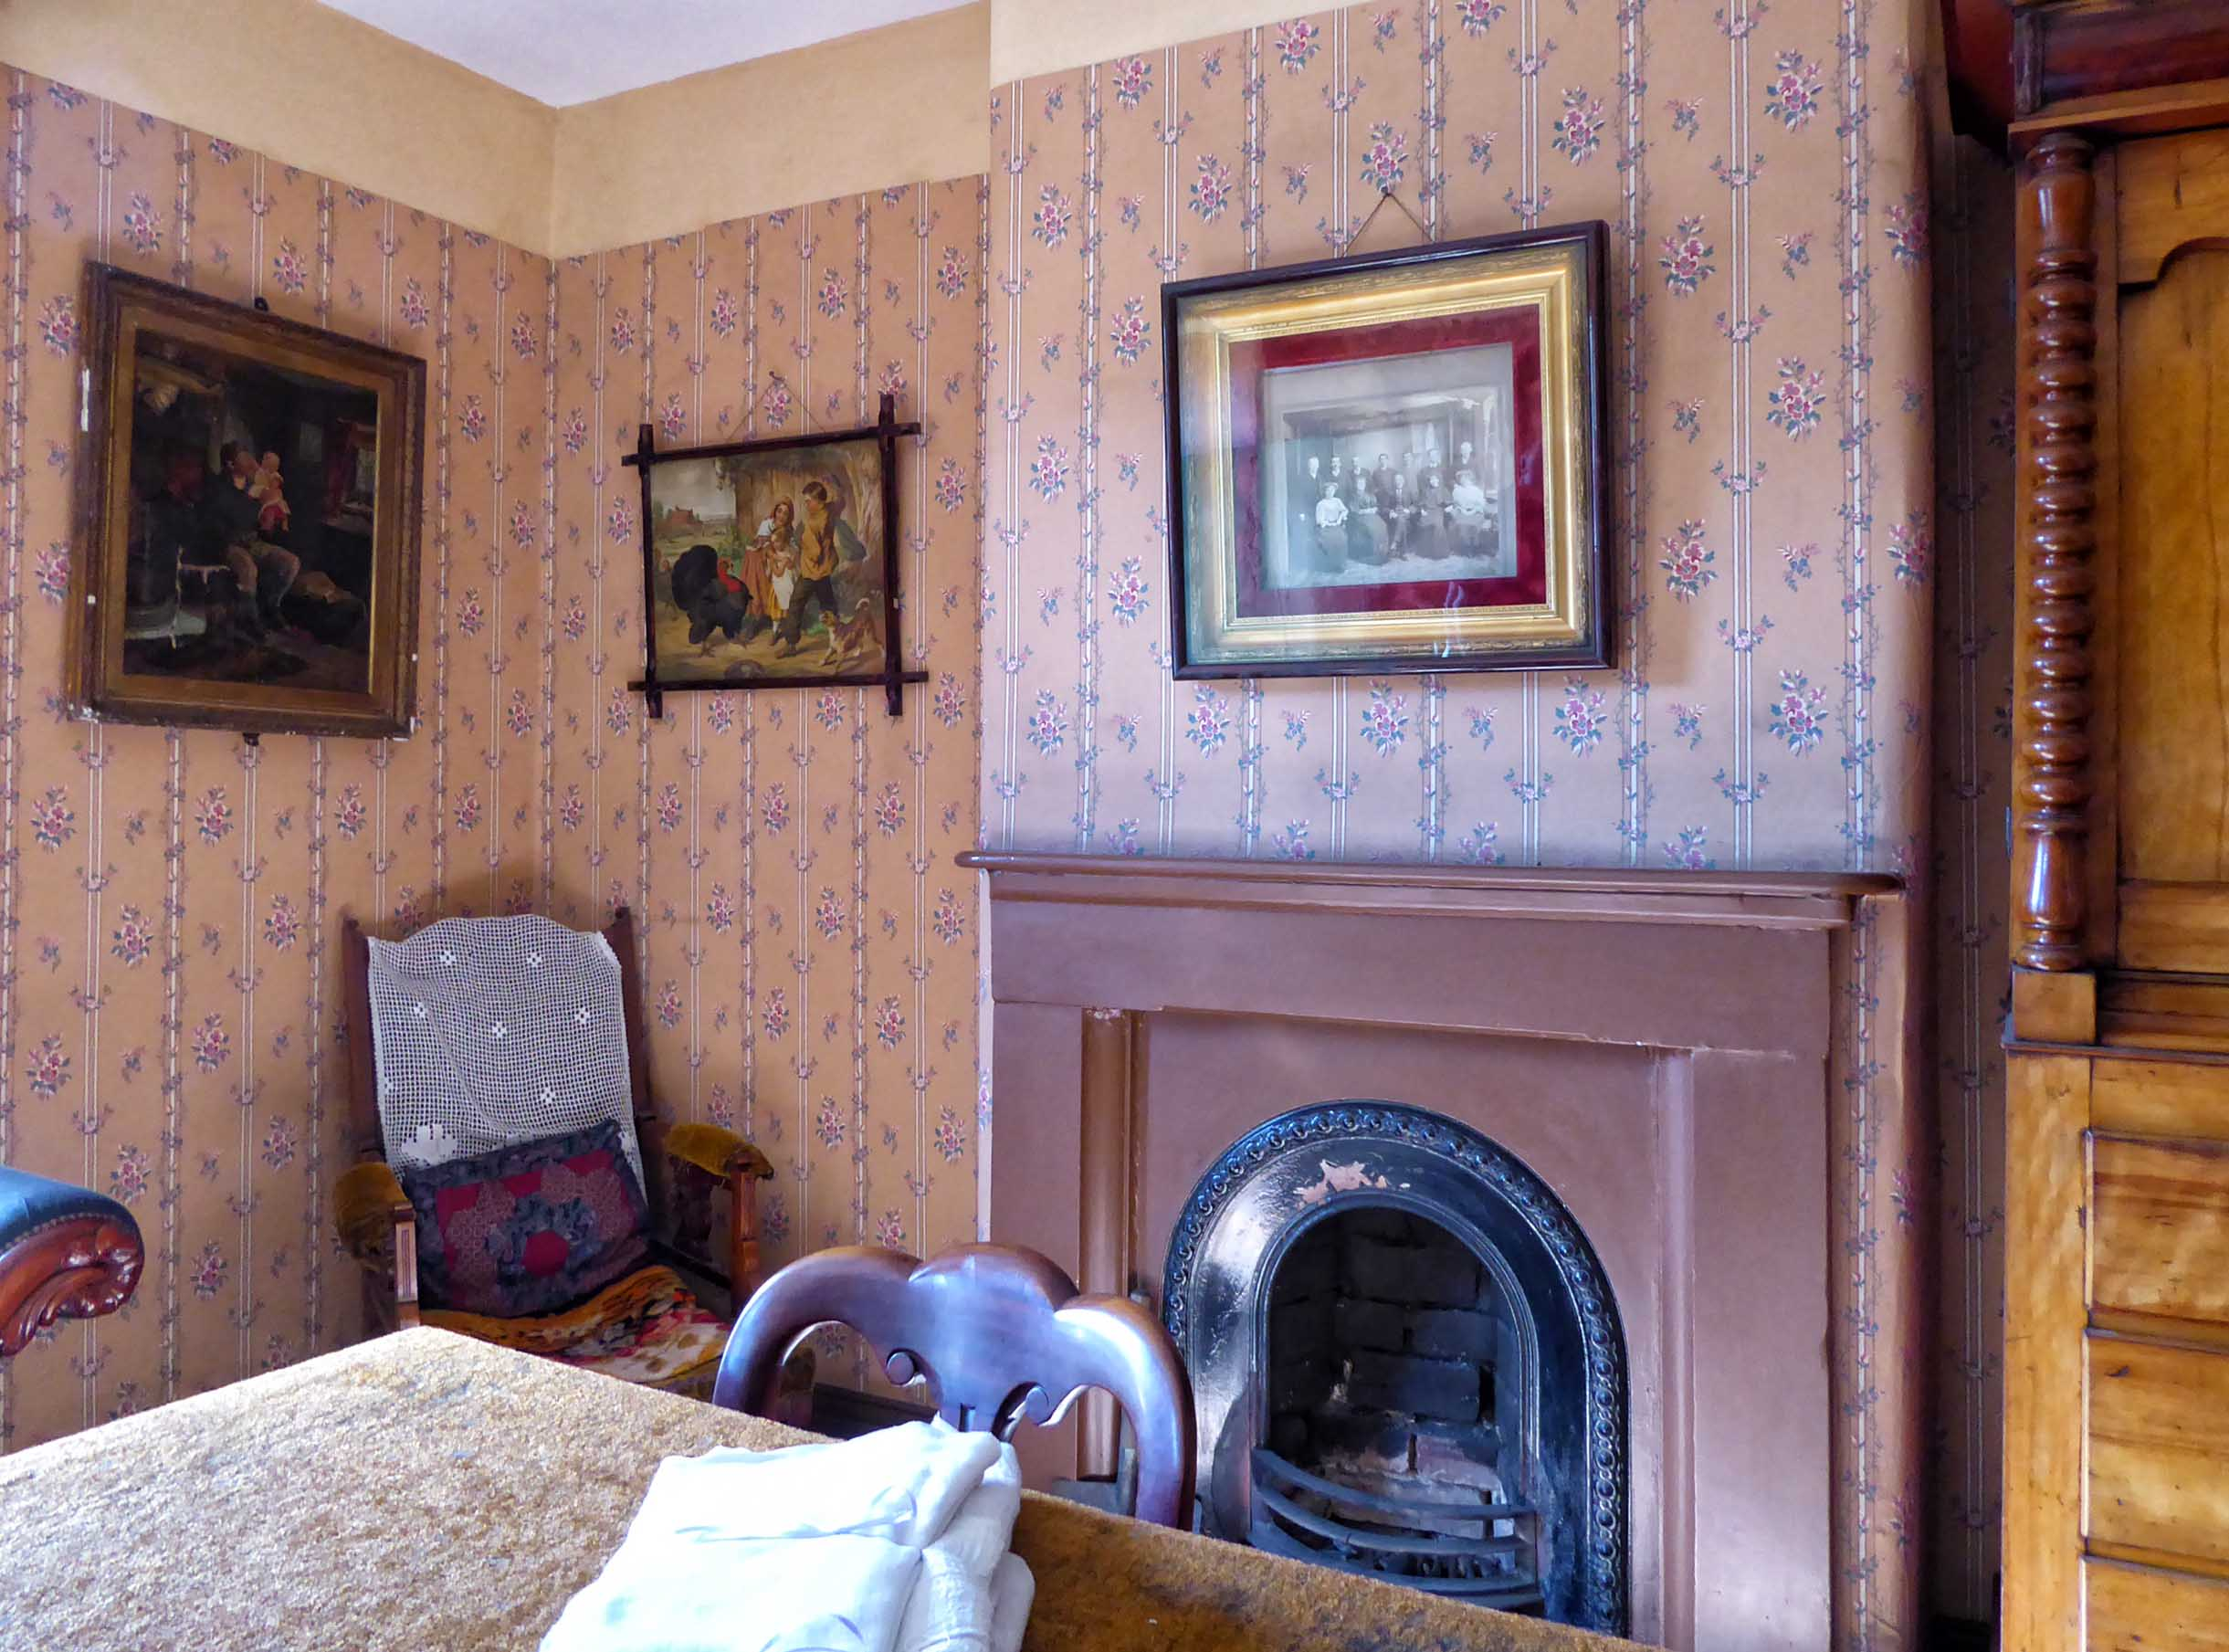 Old-fashioned room with fireplace